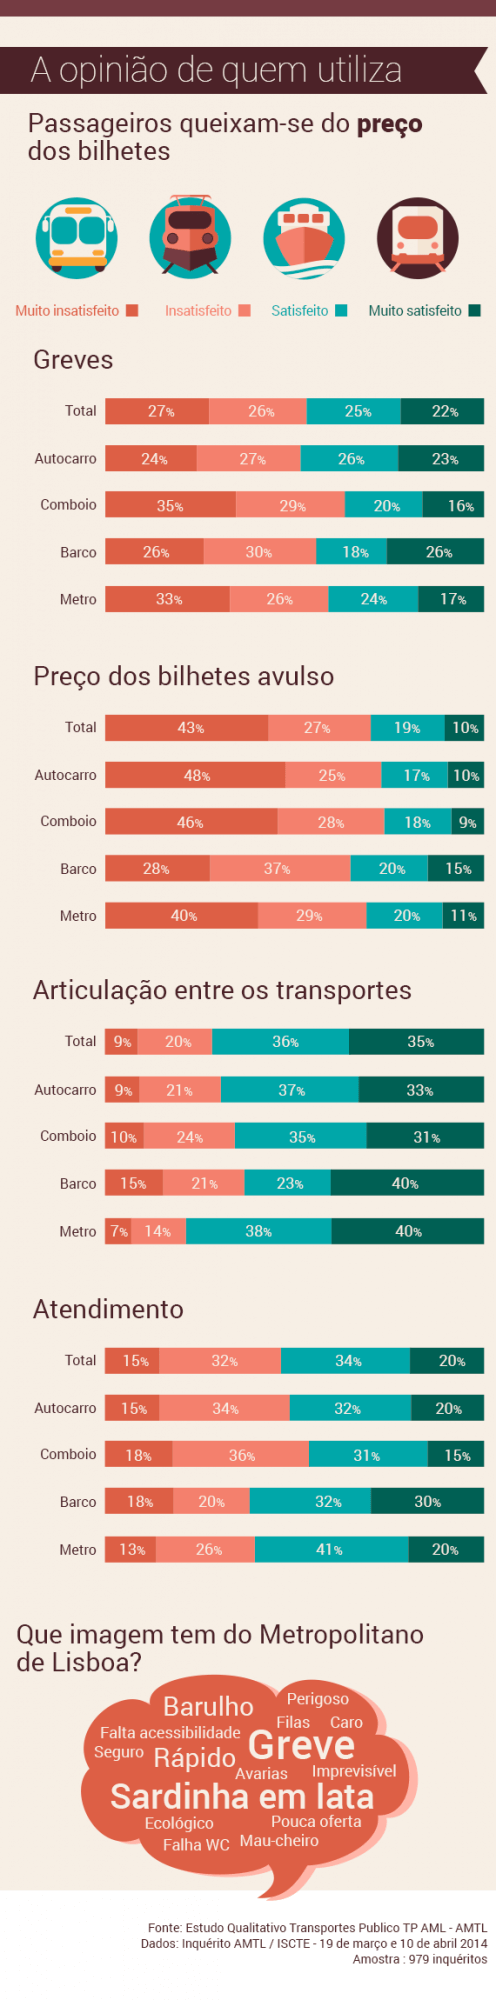 Imagem que as pessoas têm do transporte público